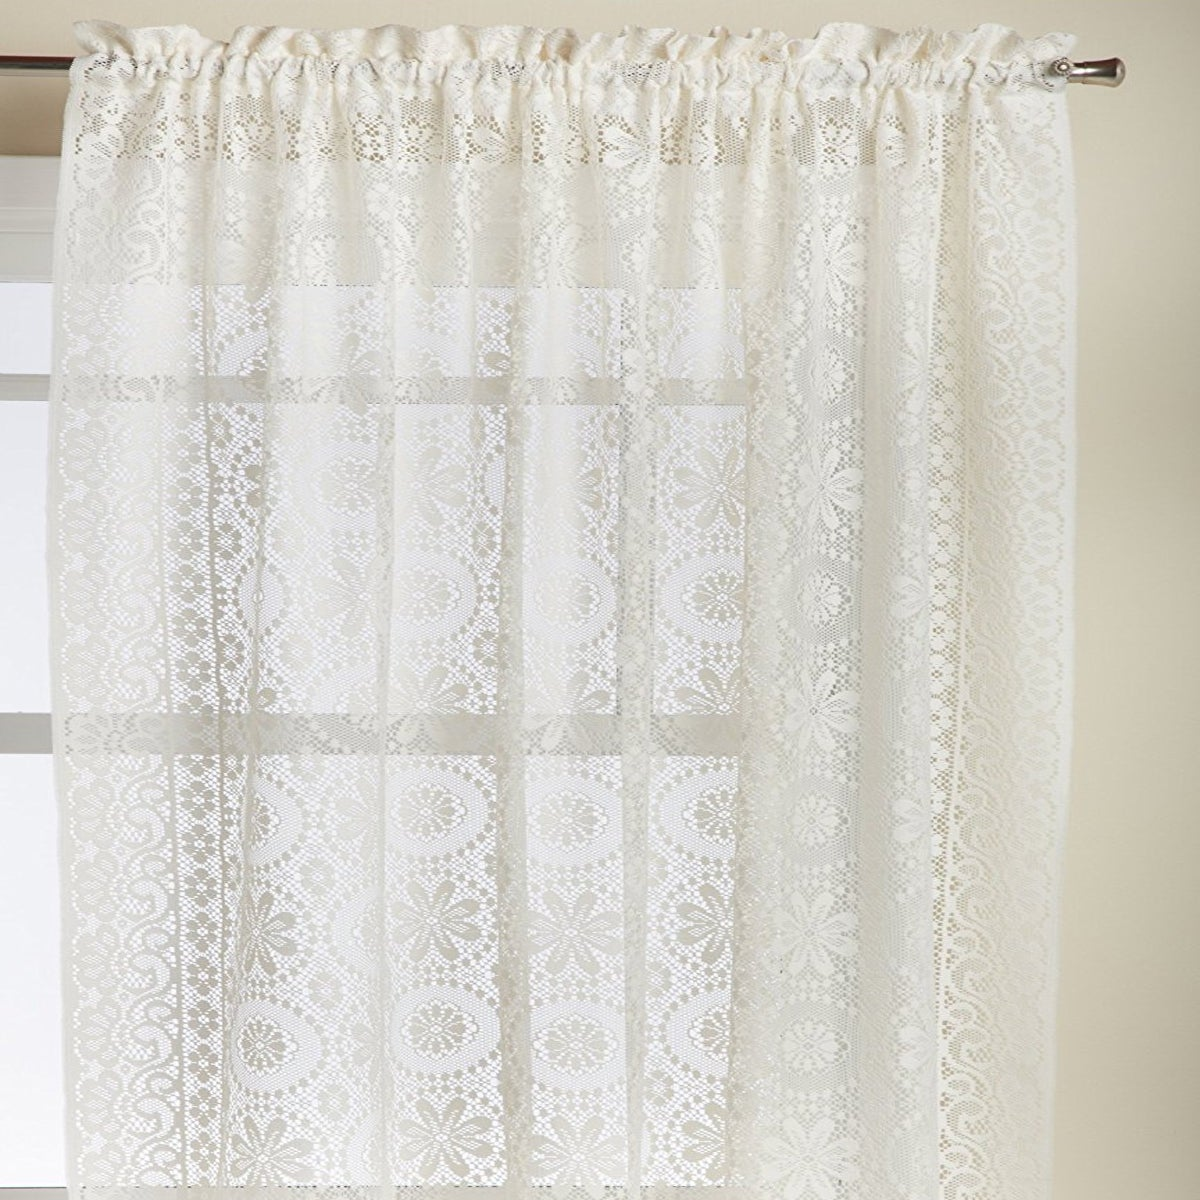 Luxurious Old World Style Lace Window Curtain Panel - Free ...